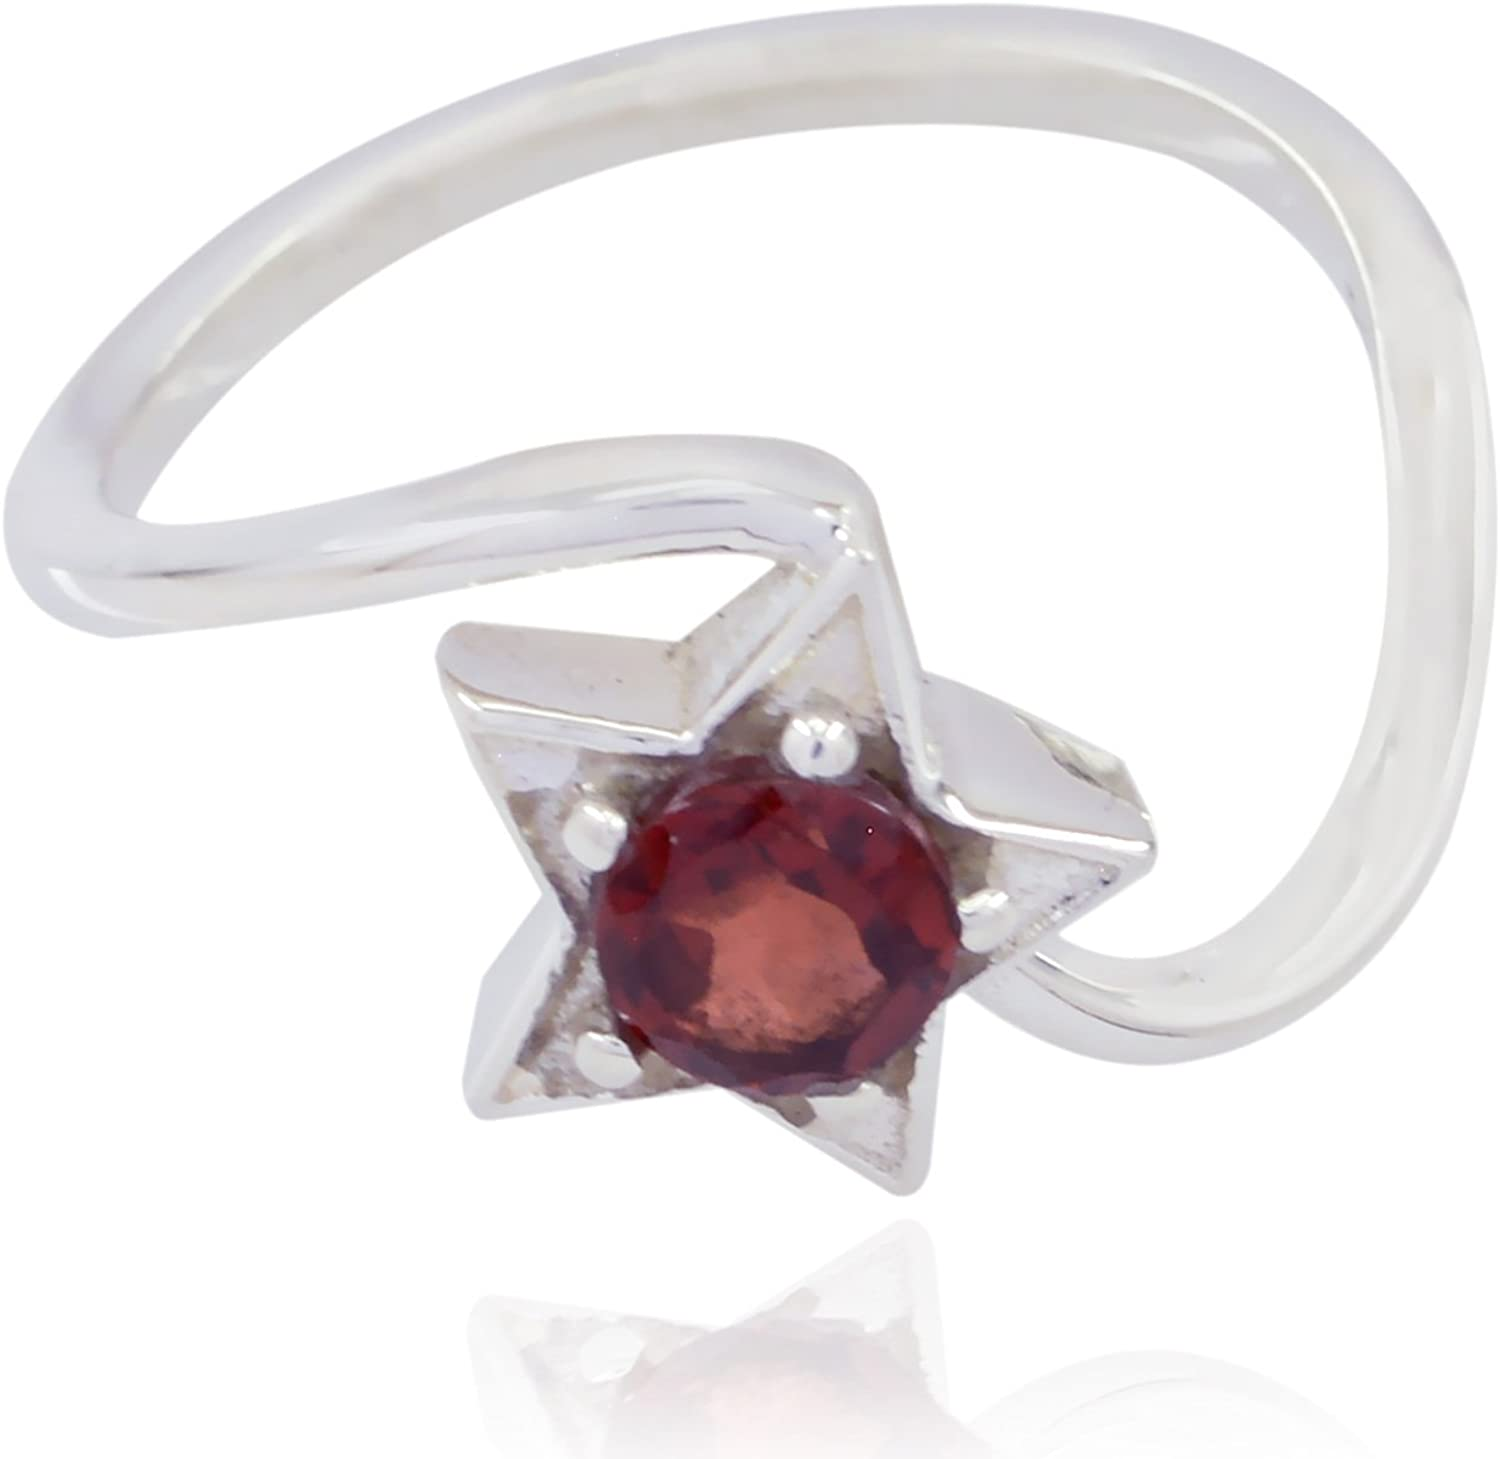 Solid Silver Red Garnet Natural Gemstone Ring Natural Gemstone Round Faceted Garnet Ring Faishon Jewelry Greatest Selling Shops Gift for Easter Sunday fine Rings